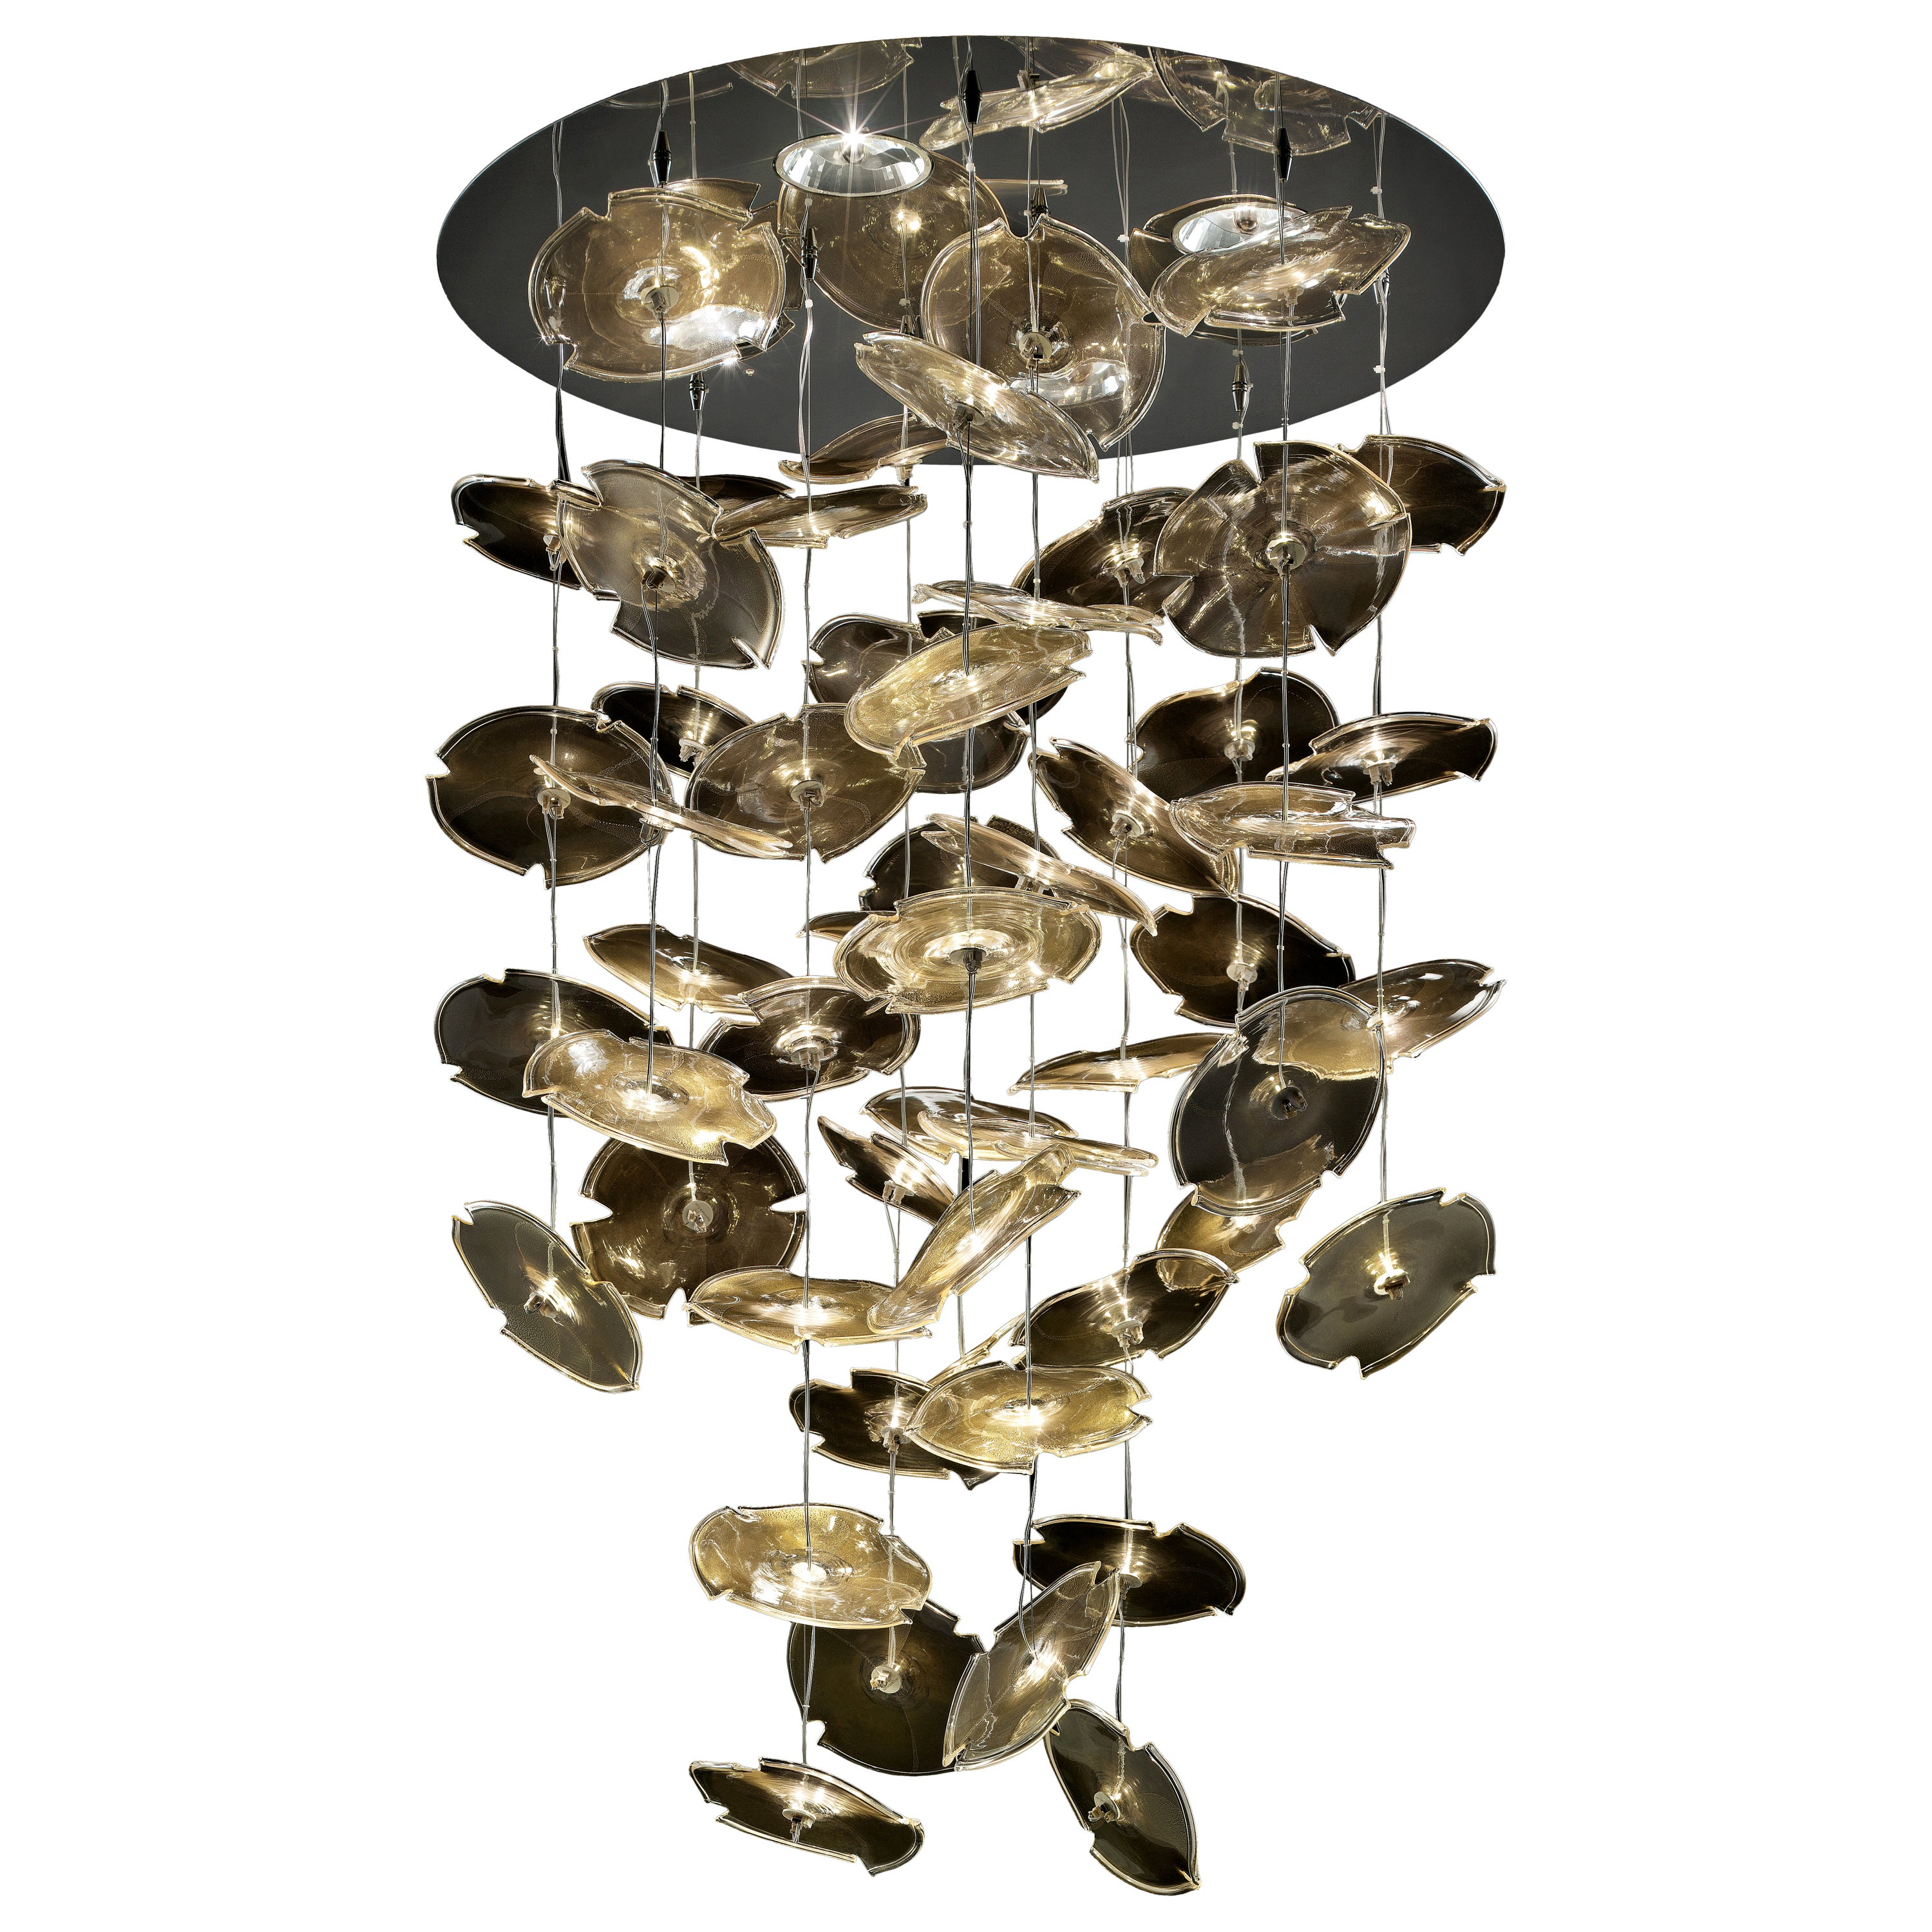 Exagon 7126 Suspension Lamp in Glass with Polished Chrome, by Barovier&Toso